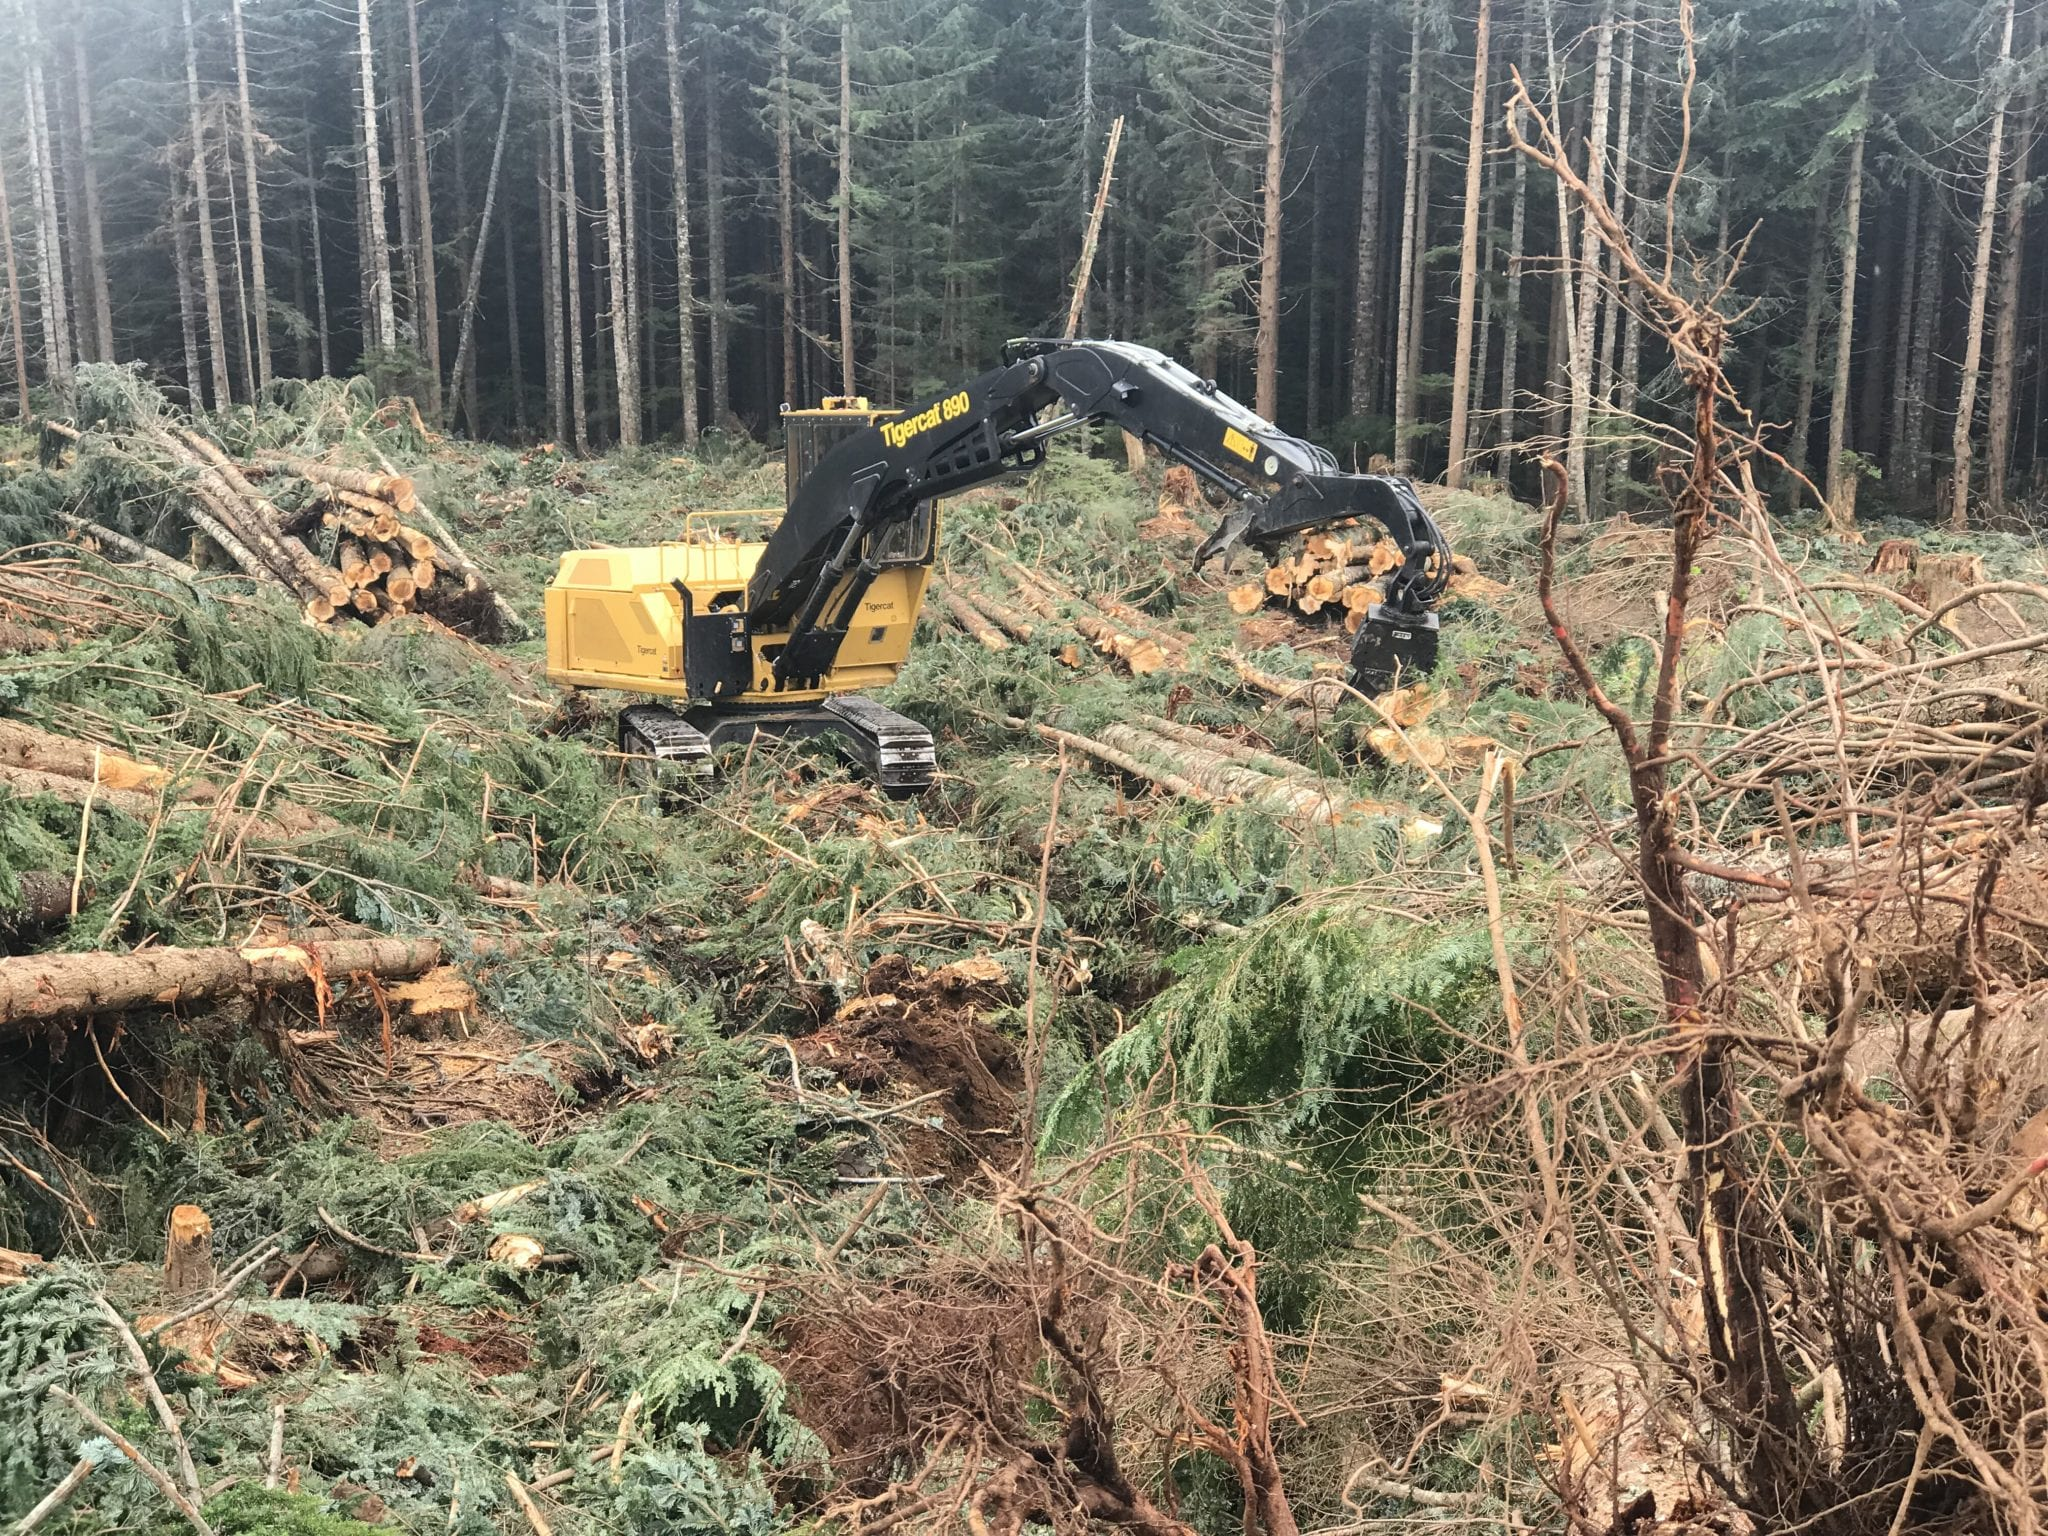 Forestry machinery at work on site